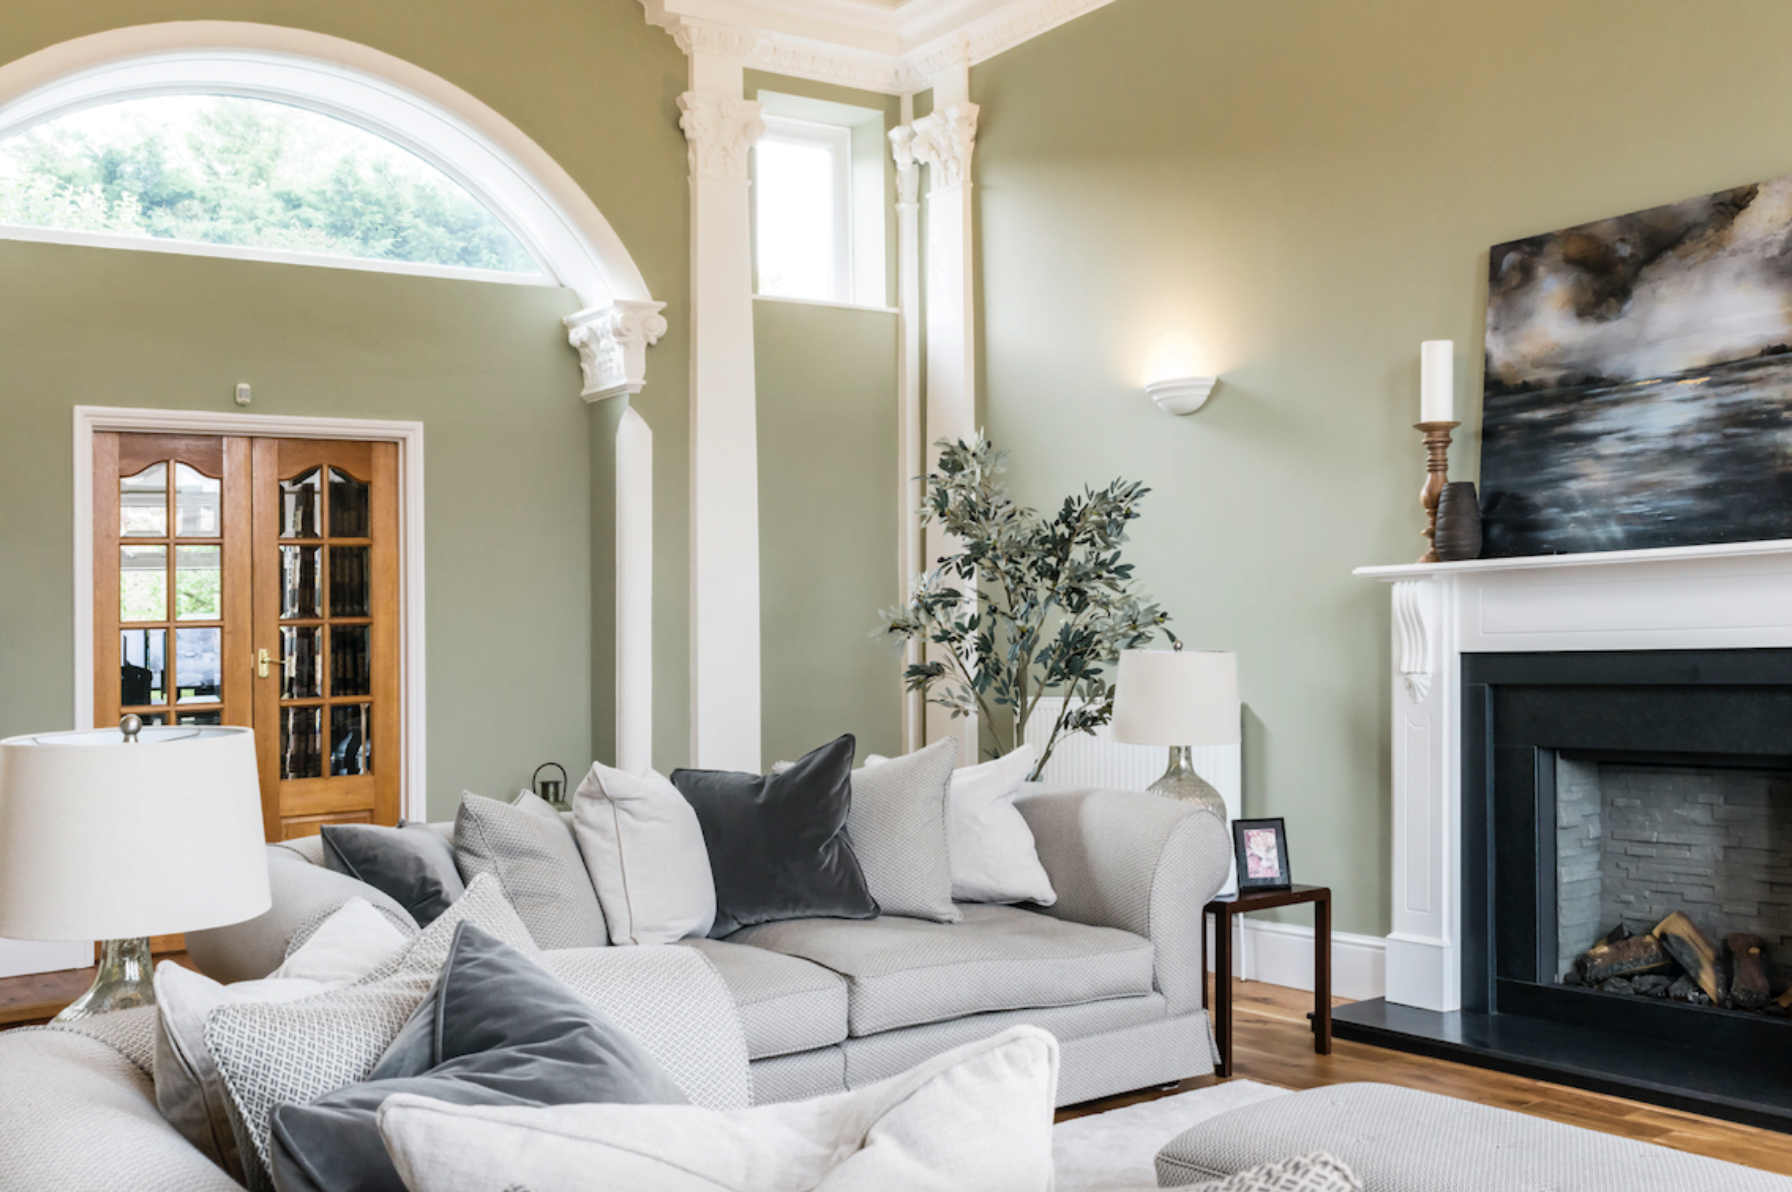 Formal Living Room with High Ceiling and Period Features